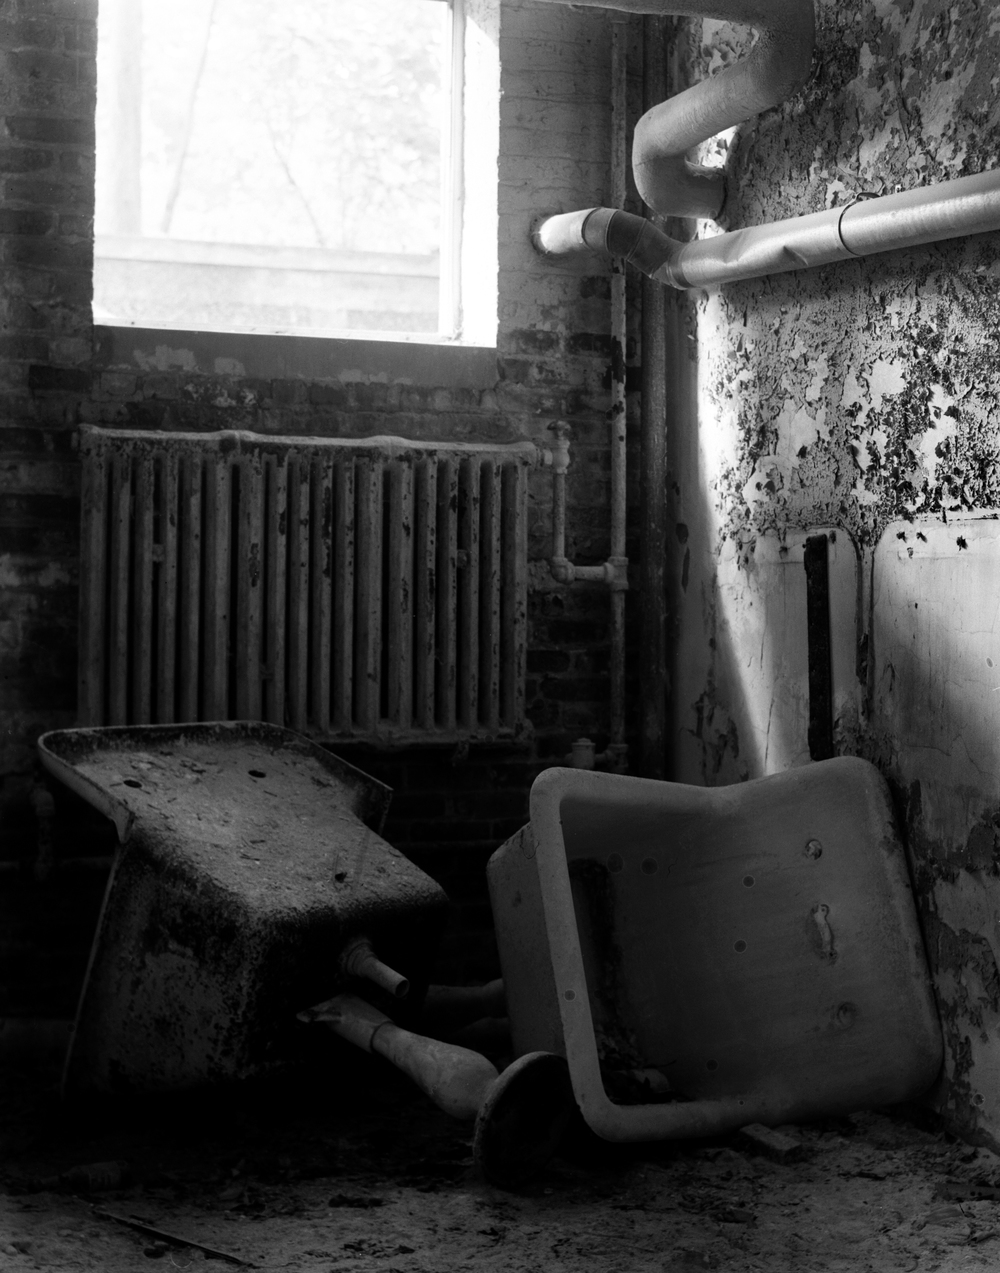 essex mountain sanatorium-34